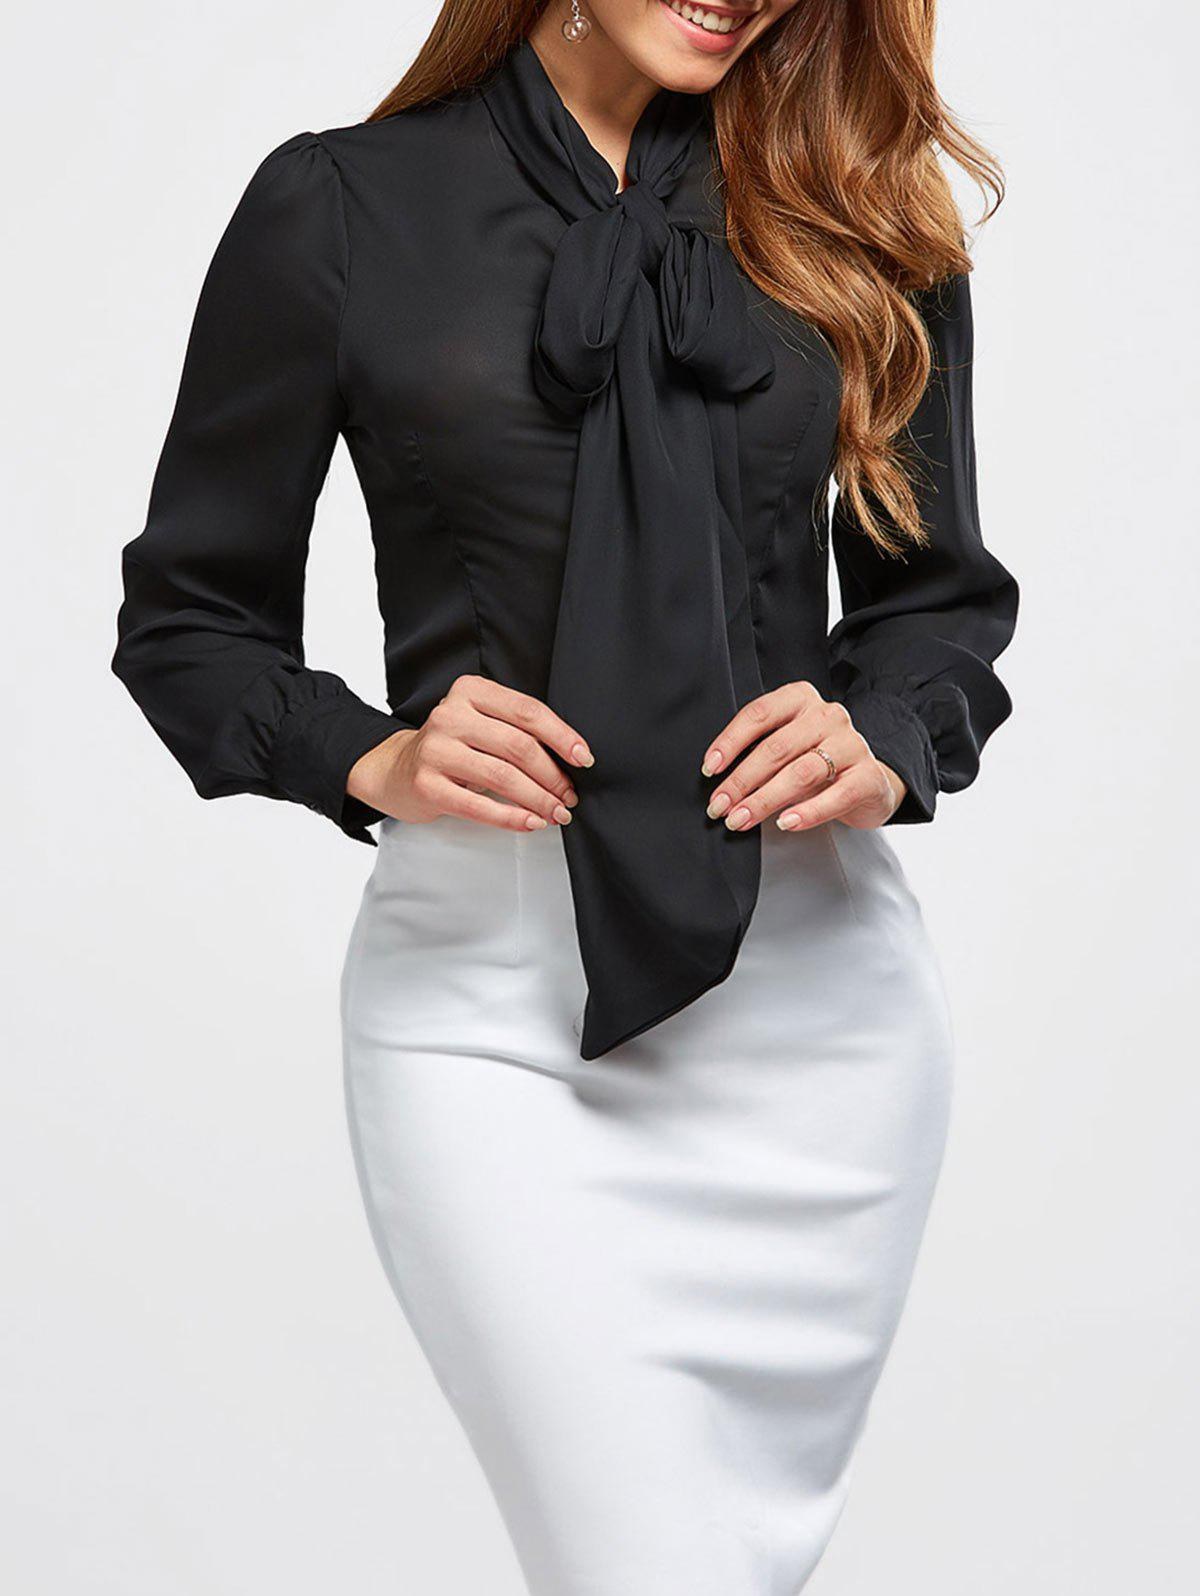 Pussy Bow Tie Neck BlouseWOMEN<br><br>Size: XL; Color: BLACK; Style: Fashion; Material: Polyester; Shirt Length: Regular; Sleeve Length: Full; Collar: Bow Tie Collar; Pattern Type: Others; Season: Fall,Spring,Summer; Weight: 0.2500kg; Package Contents: 1 x Blouse;